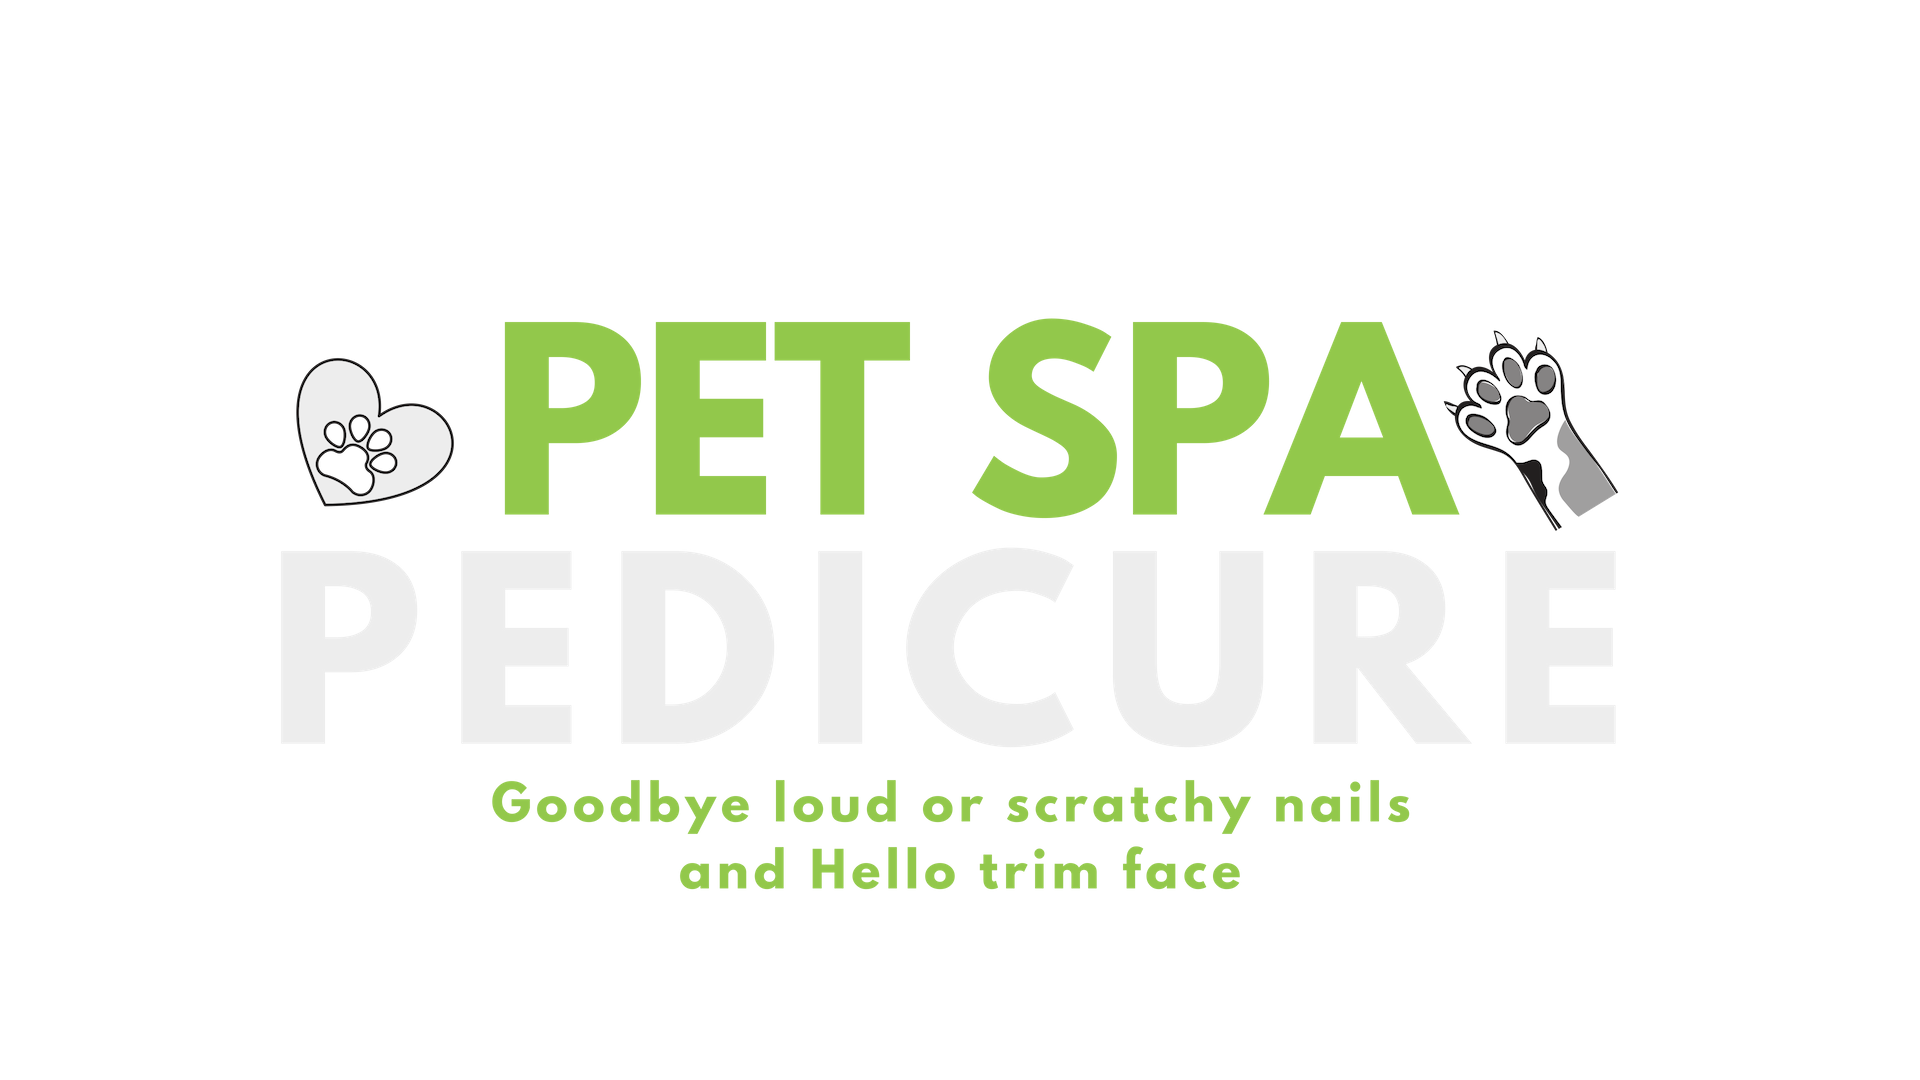 - Nail trim, face & feet trim and bath. Potty Break included.Small Dog (35lb or less) - $65Medium Dog (36lb-60lb) - $75Large Dog (61lb- 100lb) - $85**For pups over 100lbs, please call for pricing.